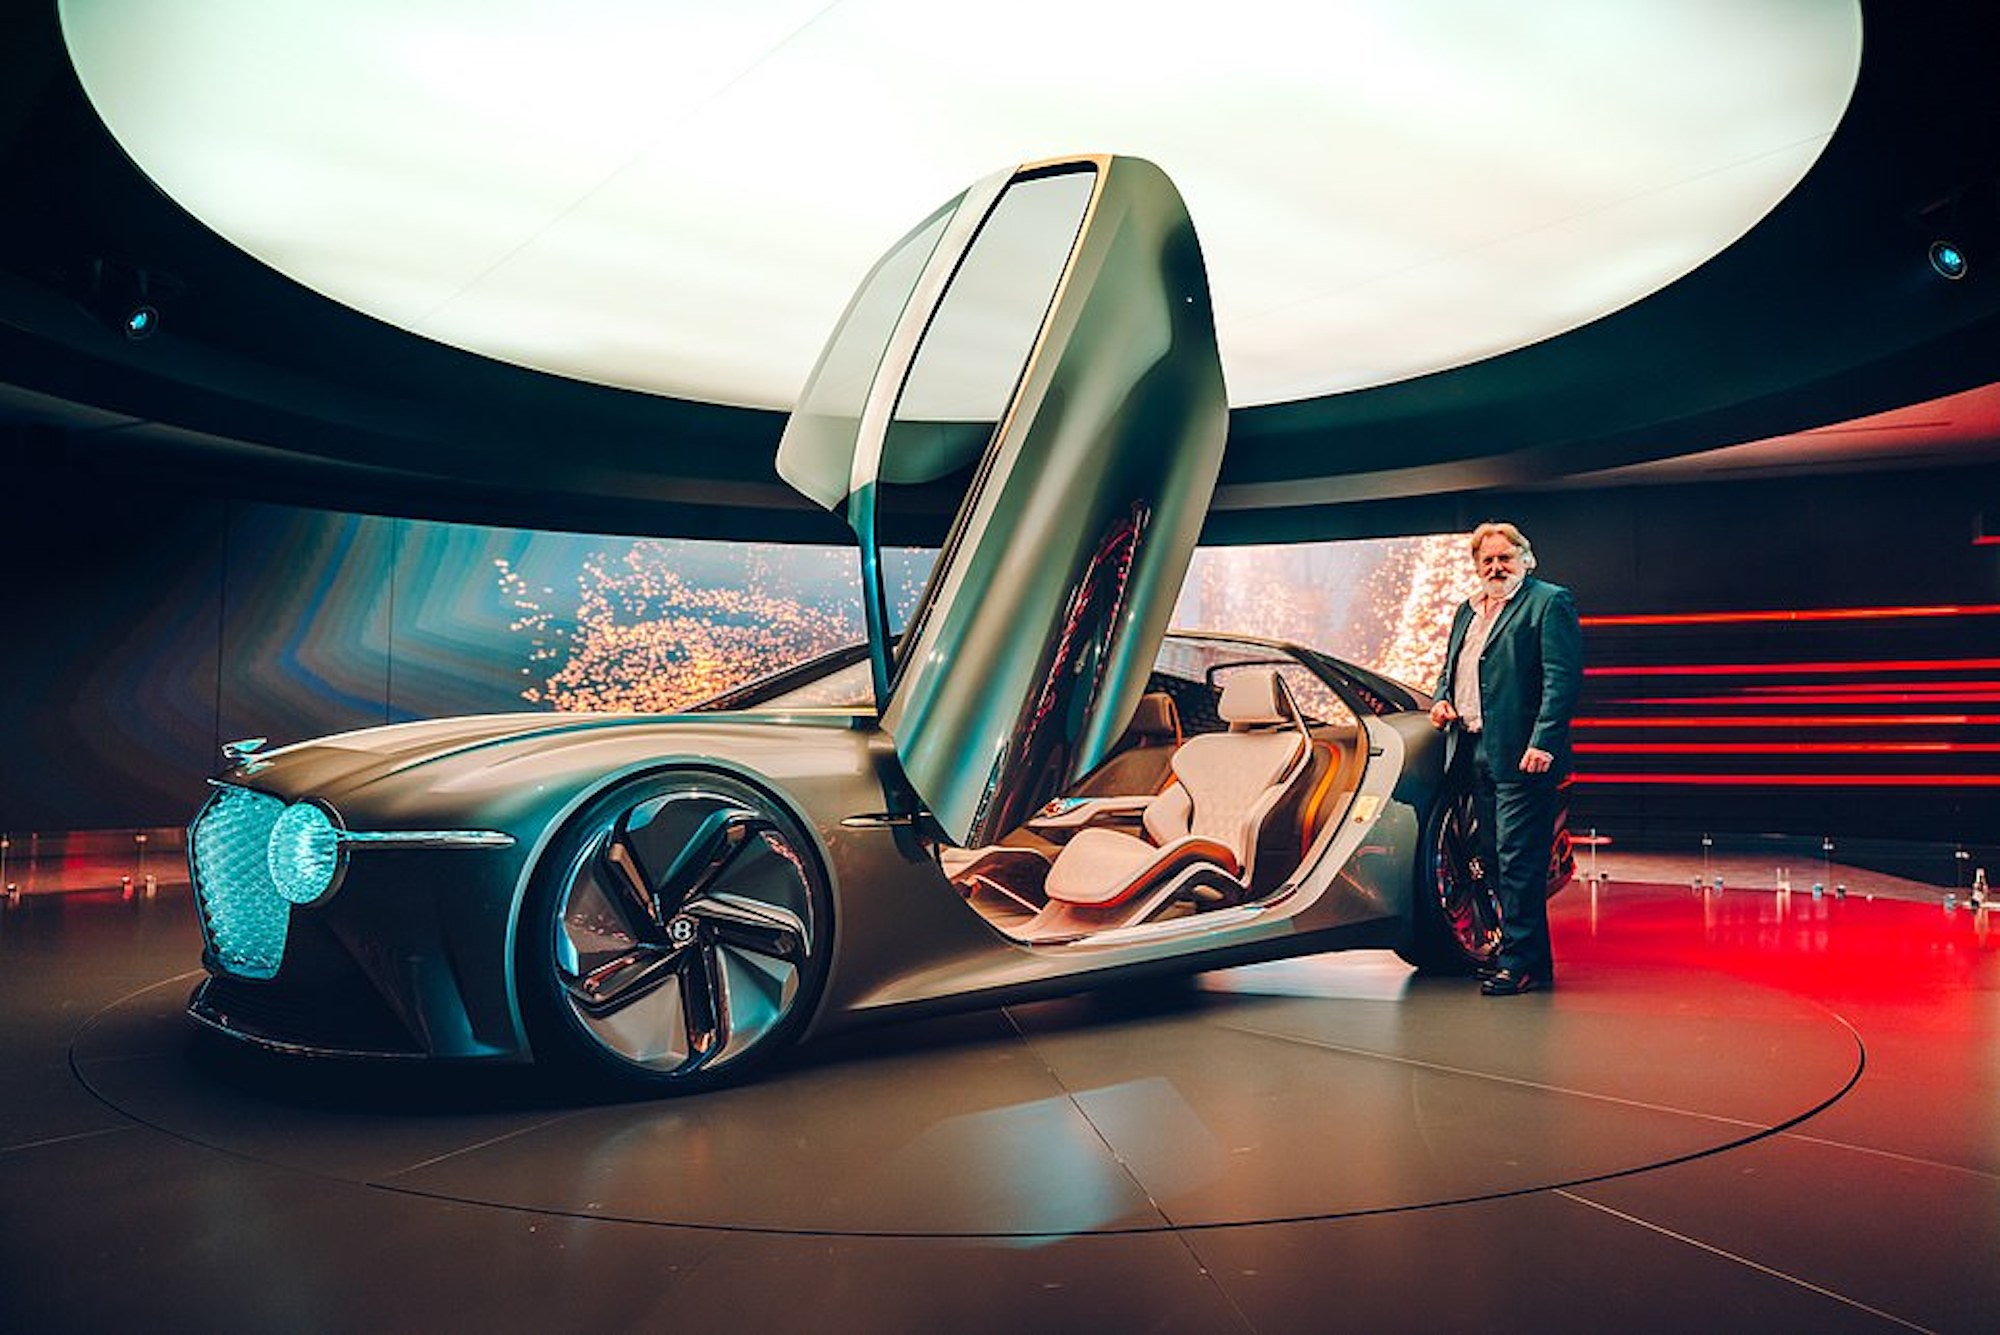 image credit: https://www.thisismoney.co.uk/money/cars/article-7232775/The-electric-Bentley-EXP-100-GT-car-future-revealed.html